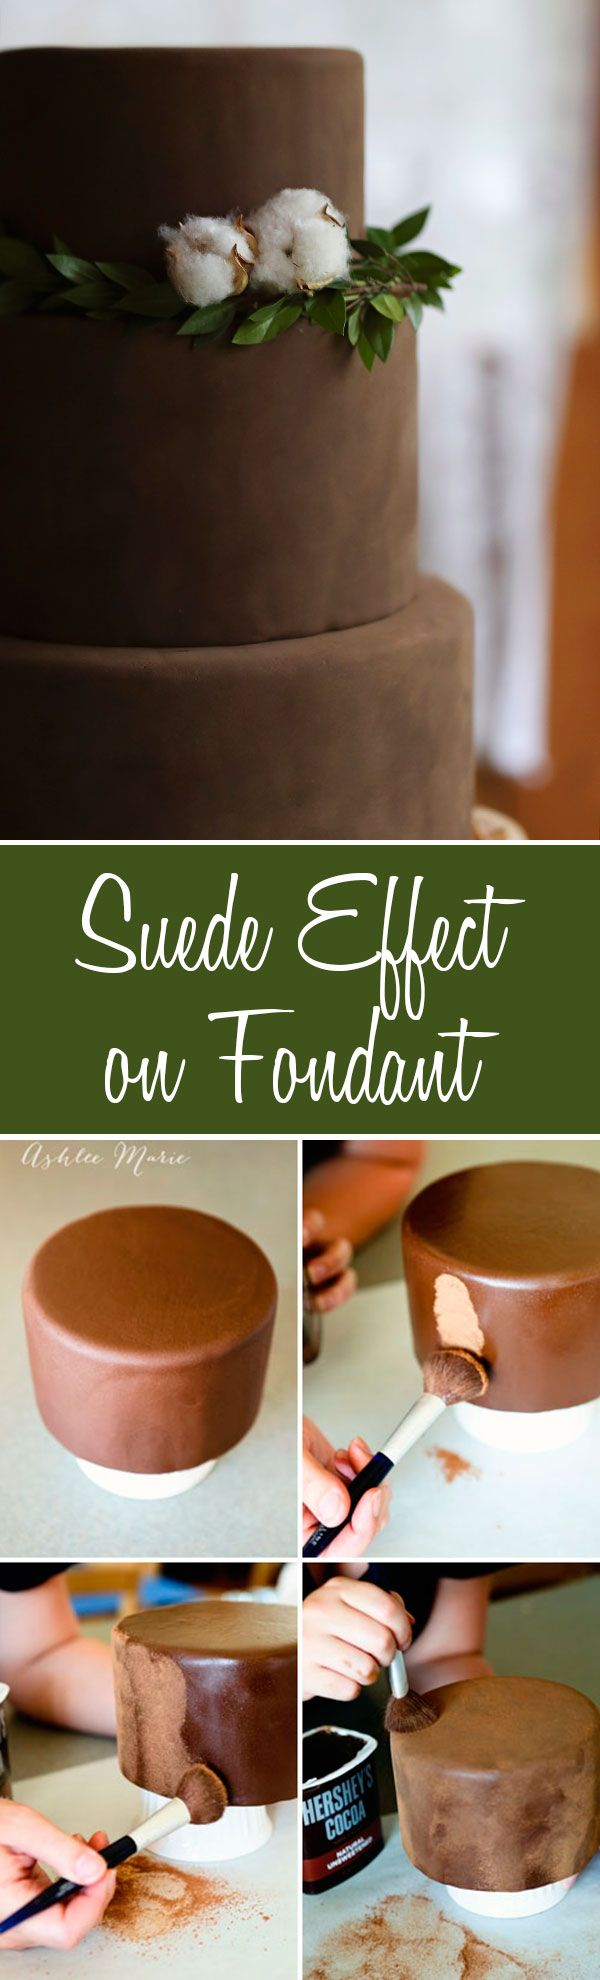 Creating a Suede effect on  Fondant